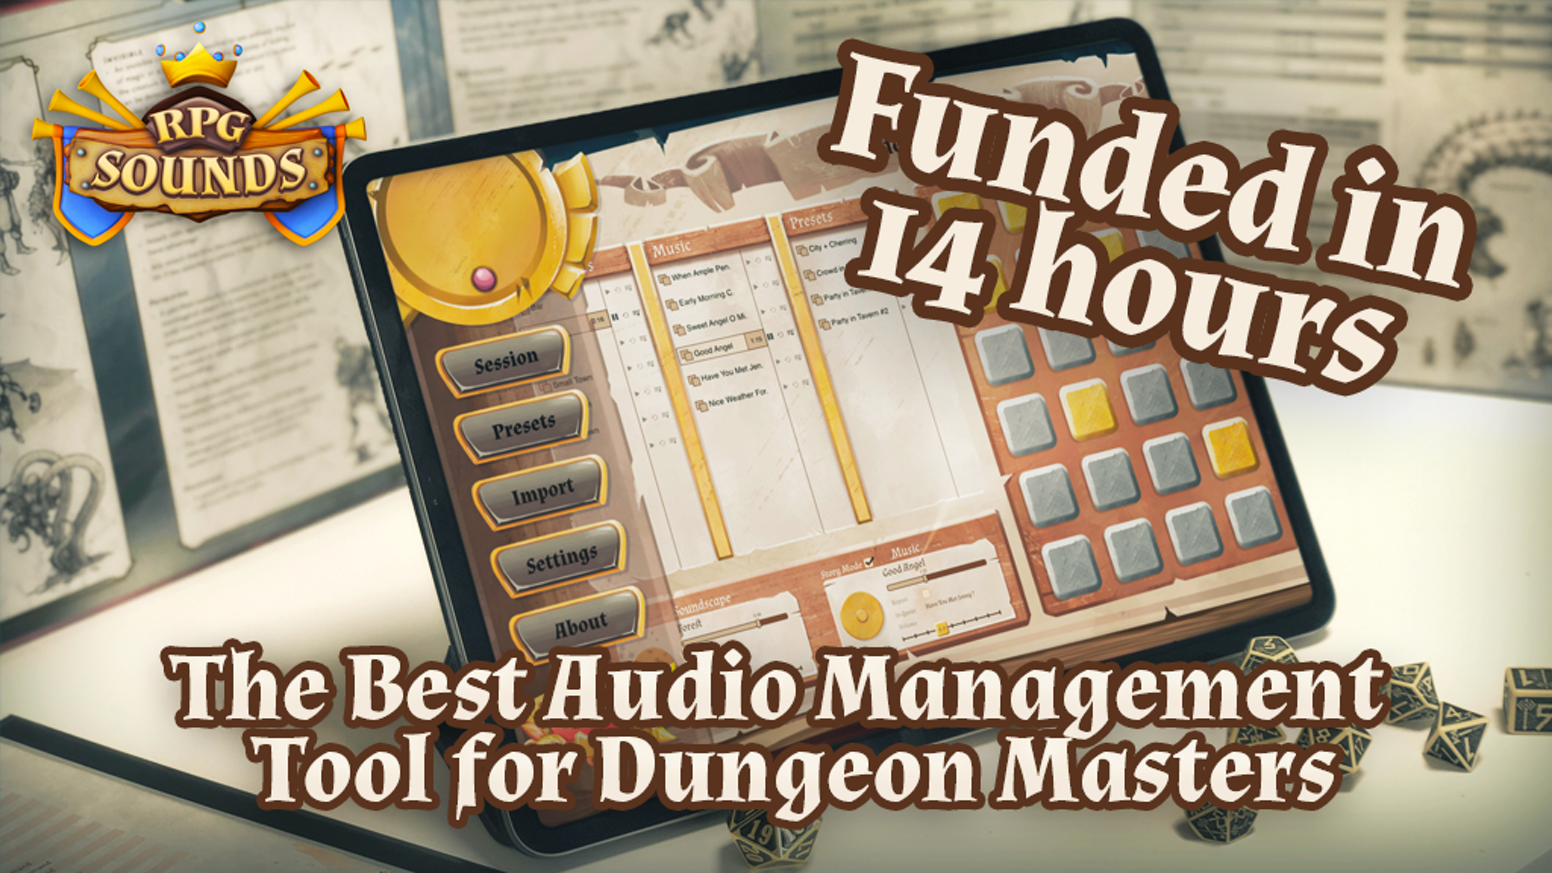 Bring your Tabletop sessions to life. Immersive auditive experiences for Dungeon Masters and Players at your fingertips.